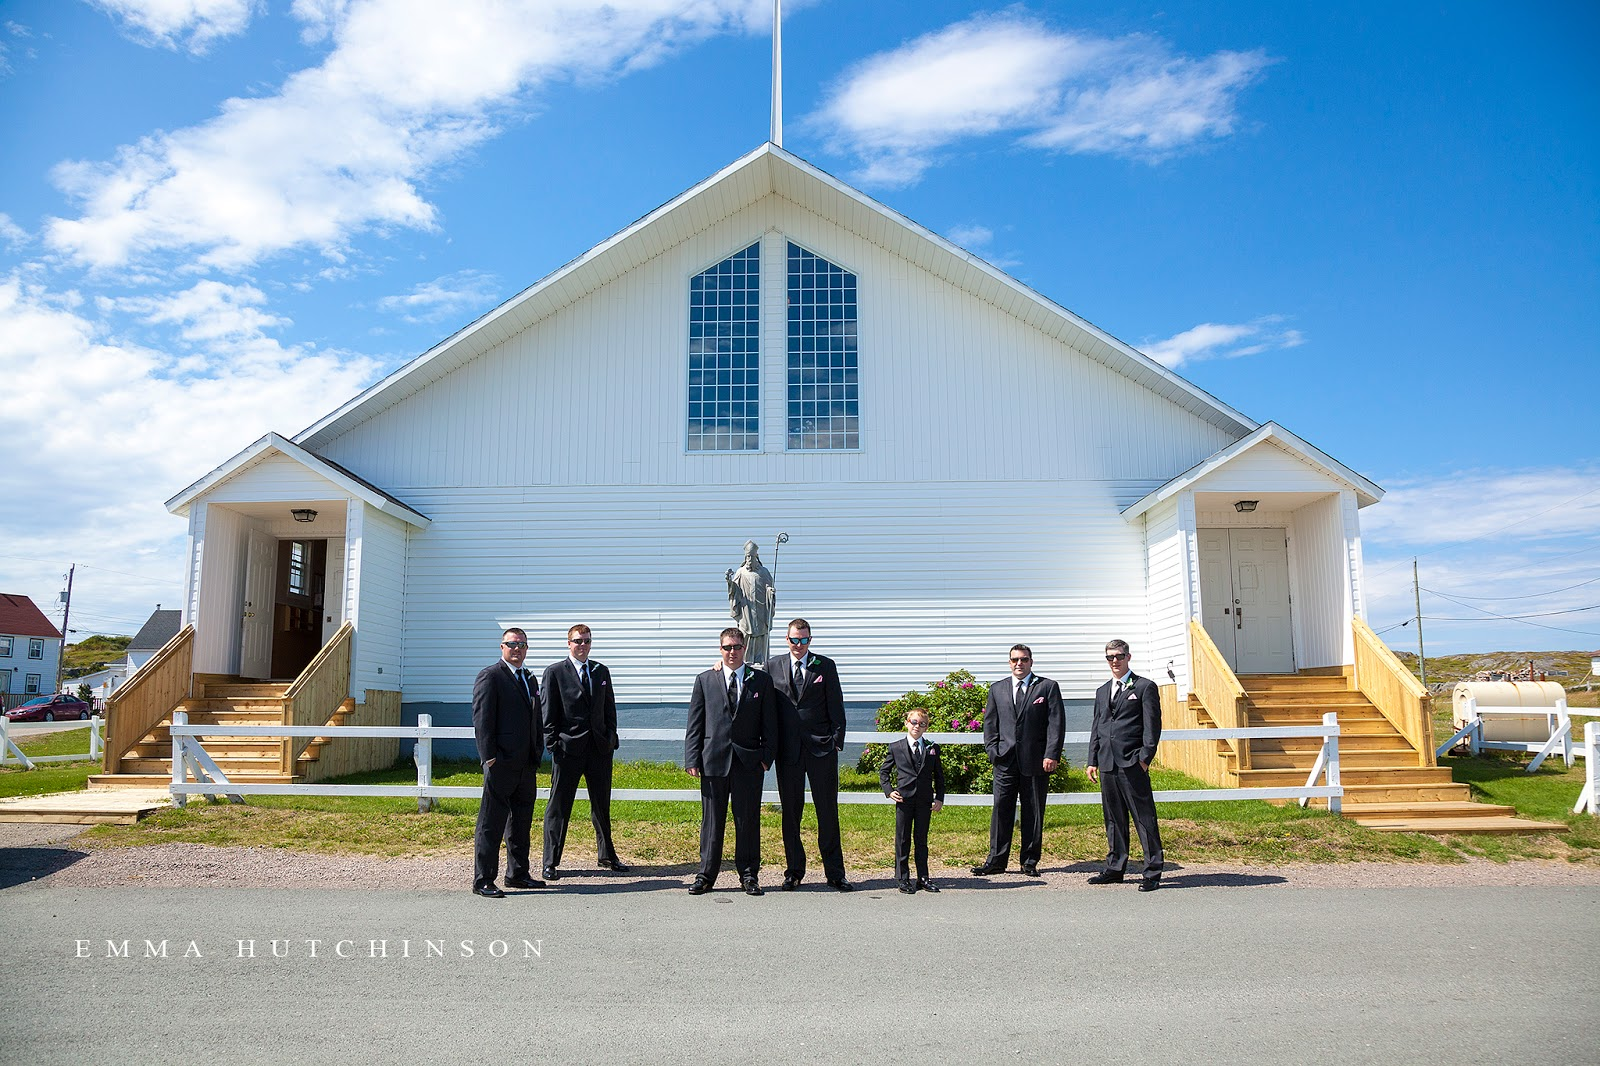 Weddings in Tilting, Fogo Island - St. Patrick's Parish Church